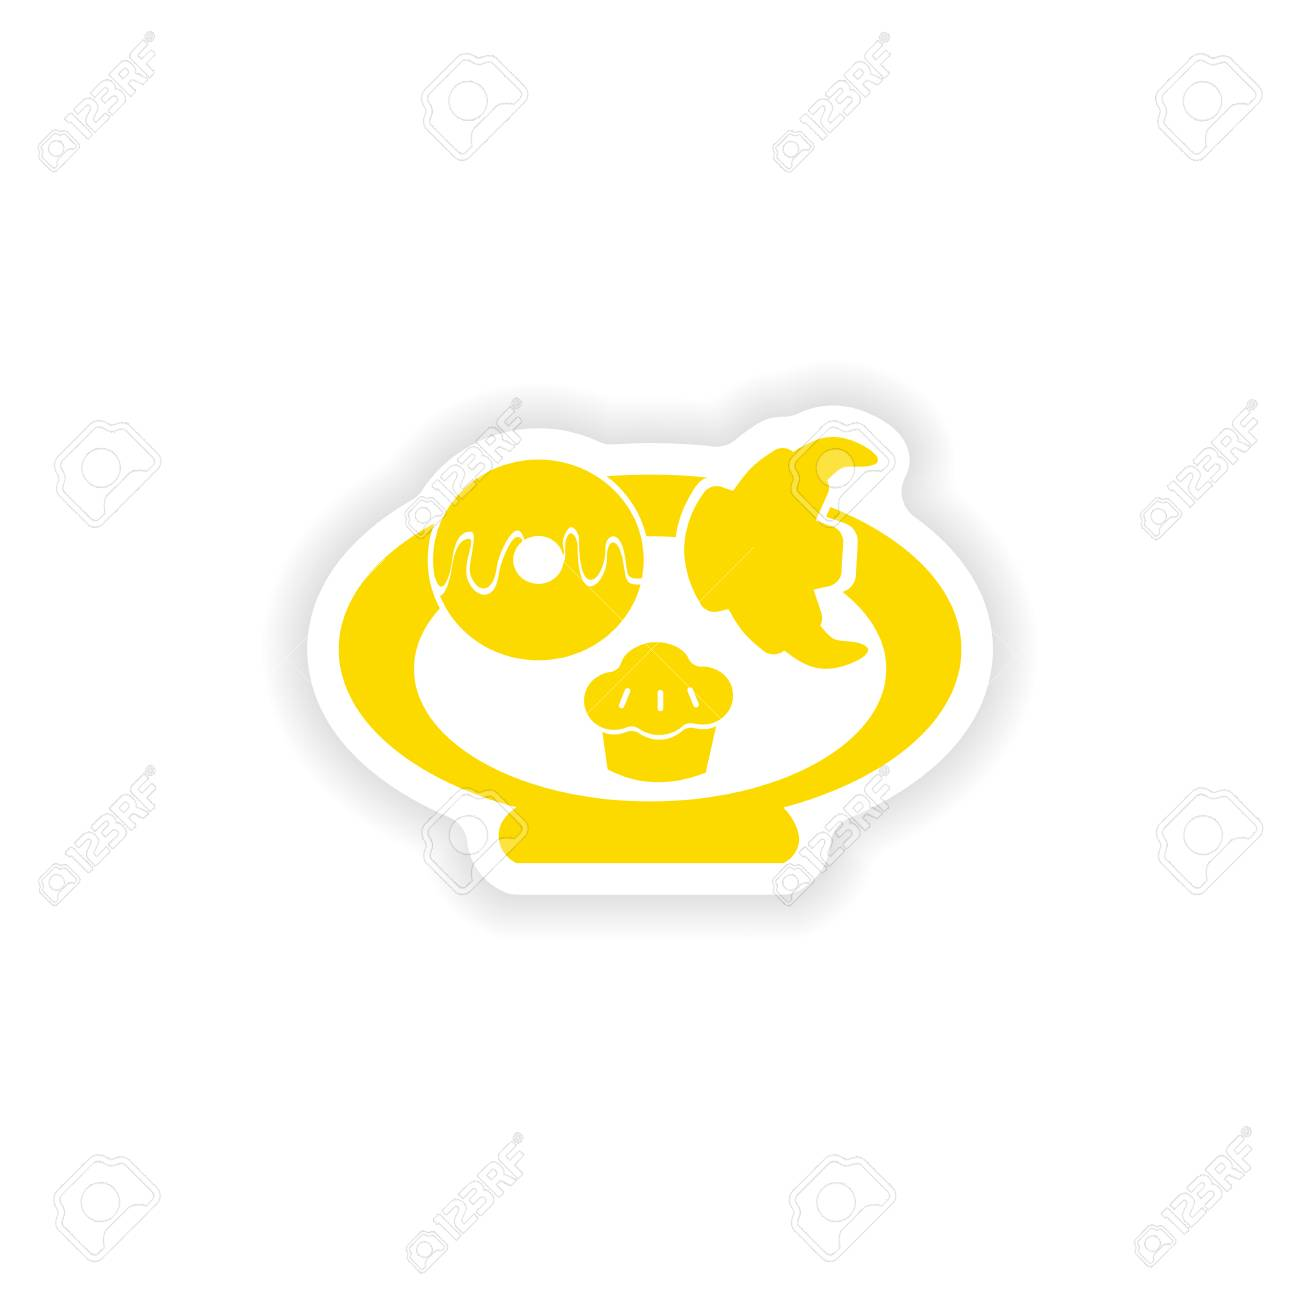 Icon sticker realistic design on paper baking cookies stock vector 42986854